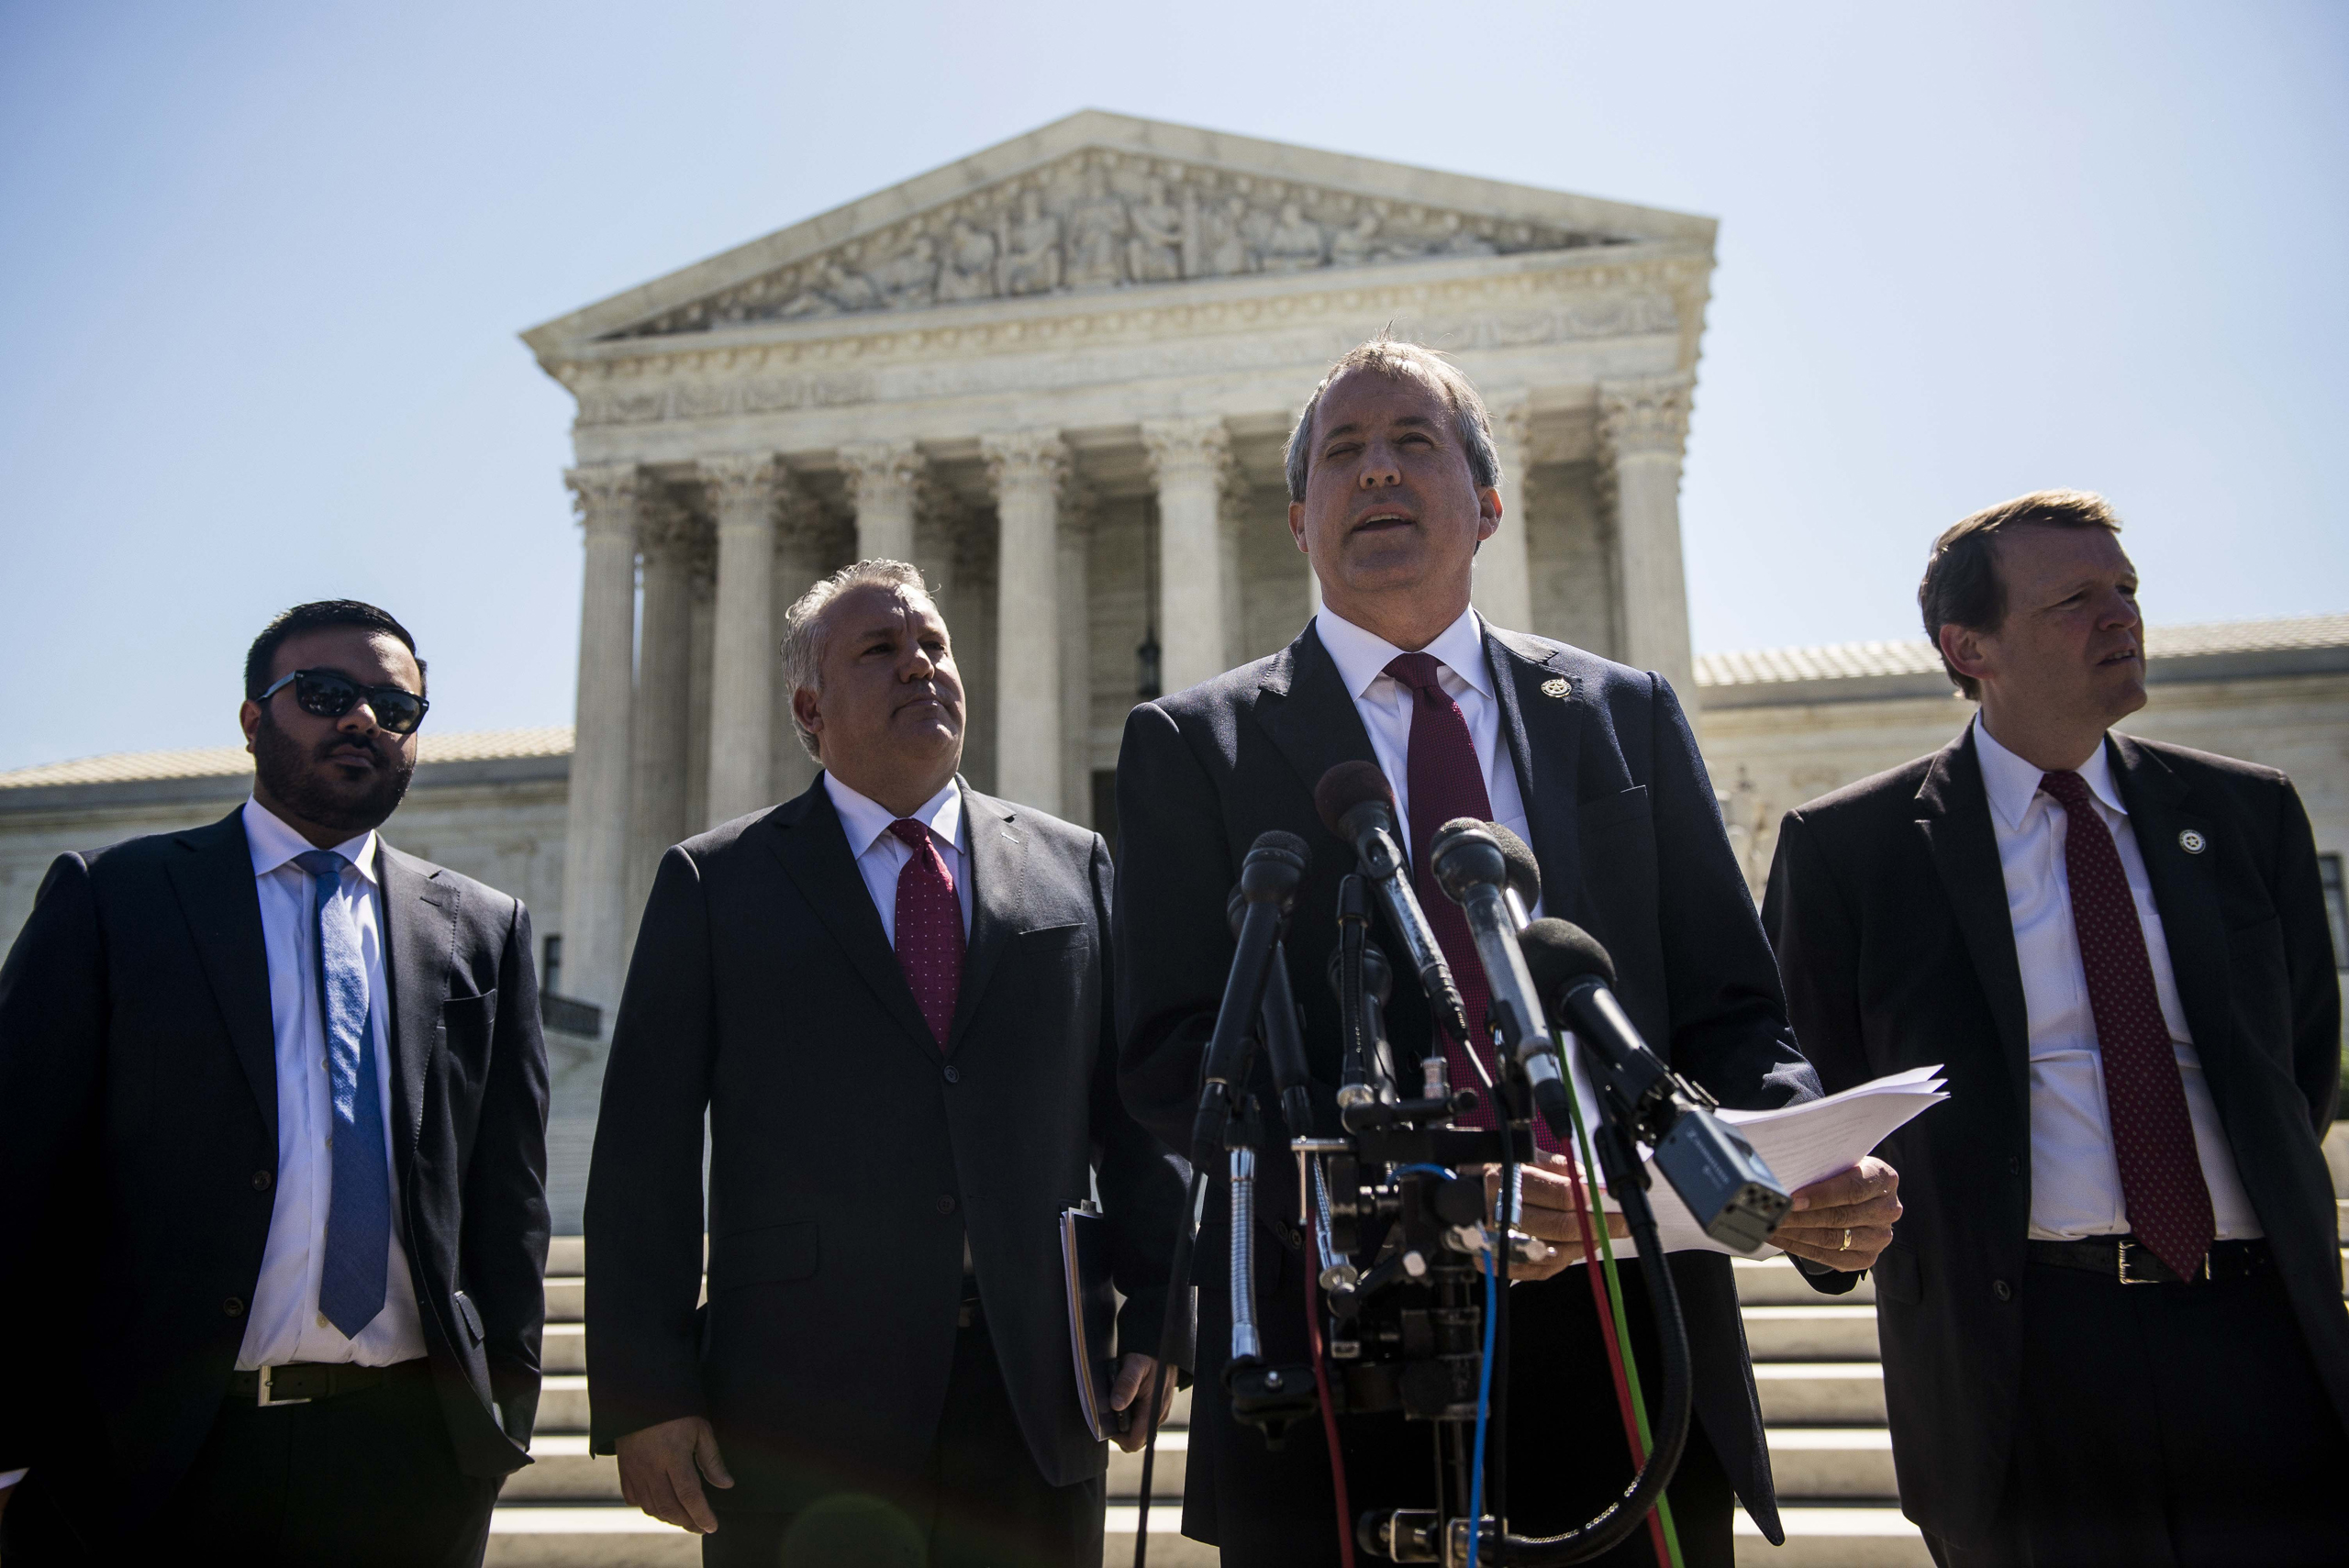 Texas Attorney General Ken Paxton speaks to reporters at a news conference outside the Supreme Court on Capitol Hill in Washington D.C. on June 9, 2016.